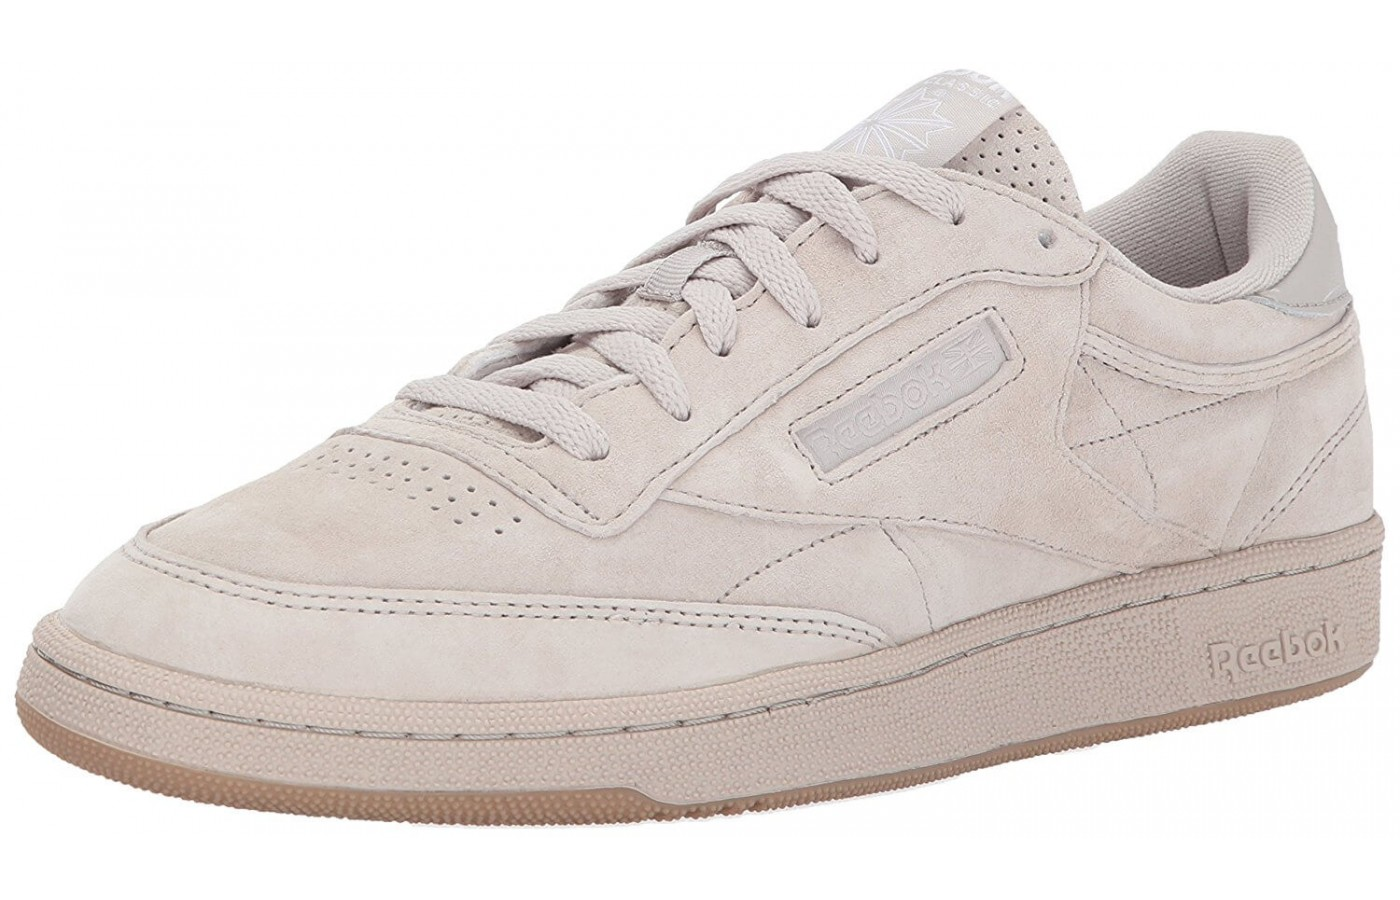 835030fd1f9 The Reebok Club C 85 features Reebok s classic union jack logo ...